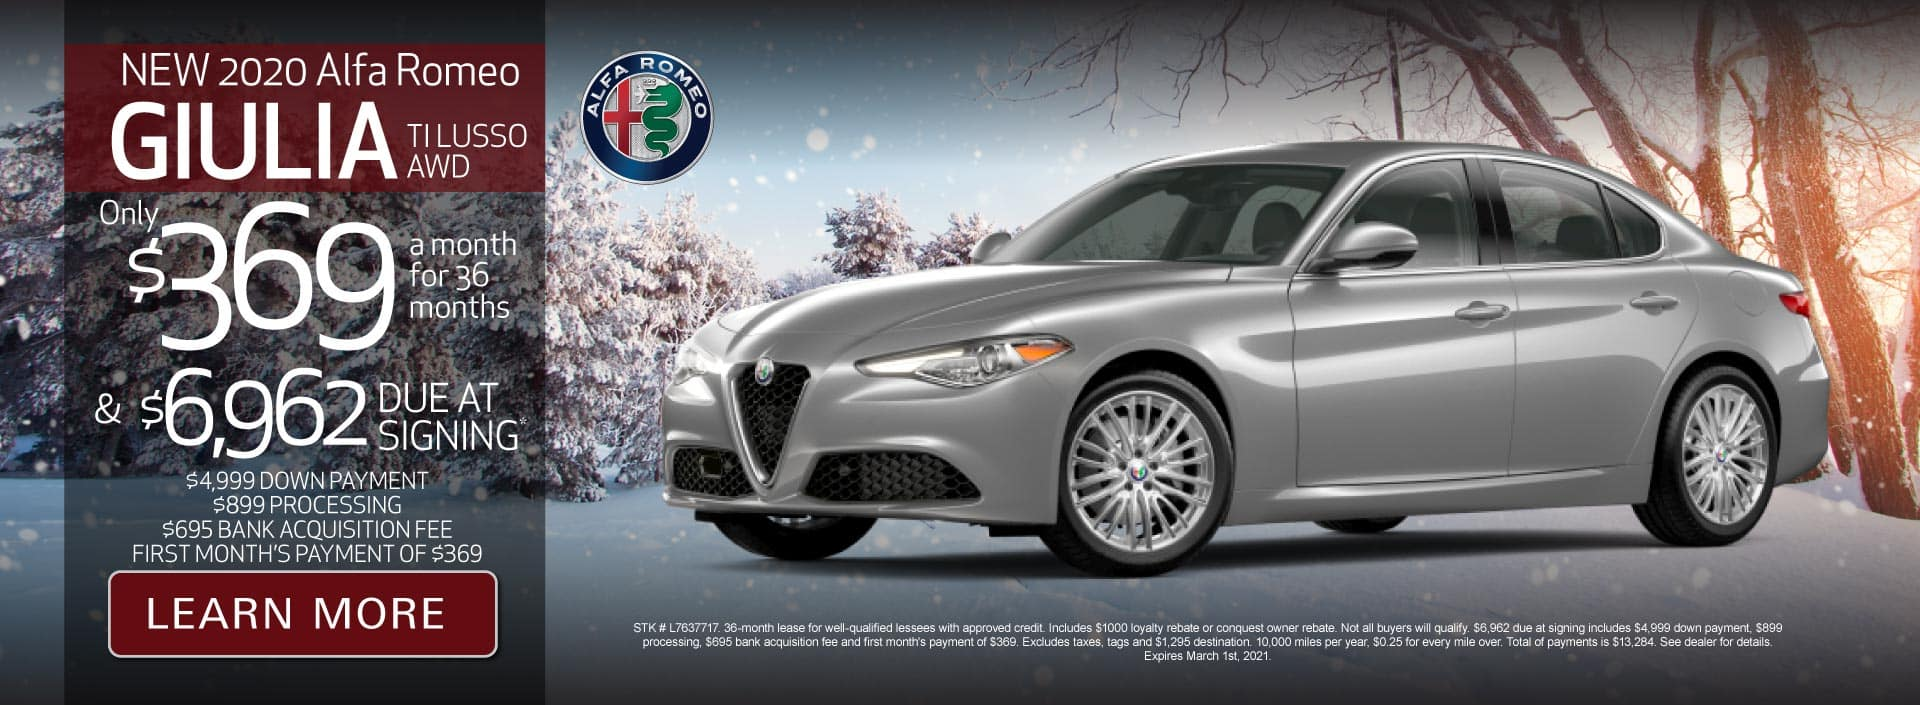 New 2020 Giulia TI Lusso AWD Only $369 a month for 36 months | Learn More